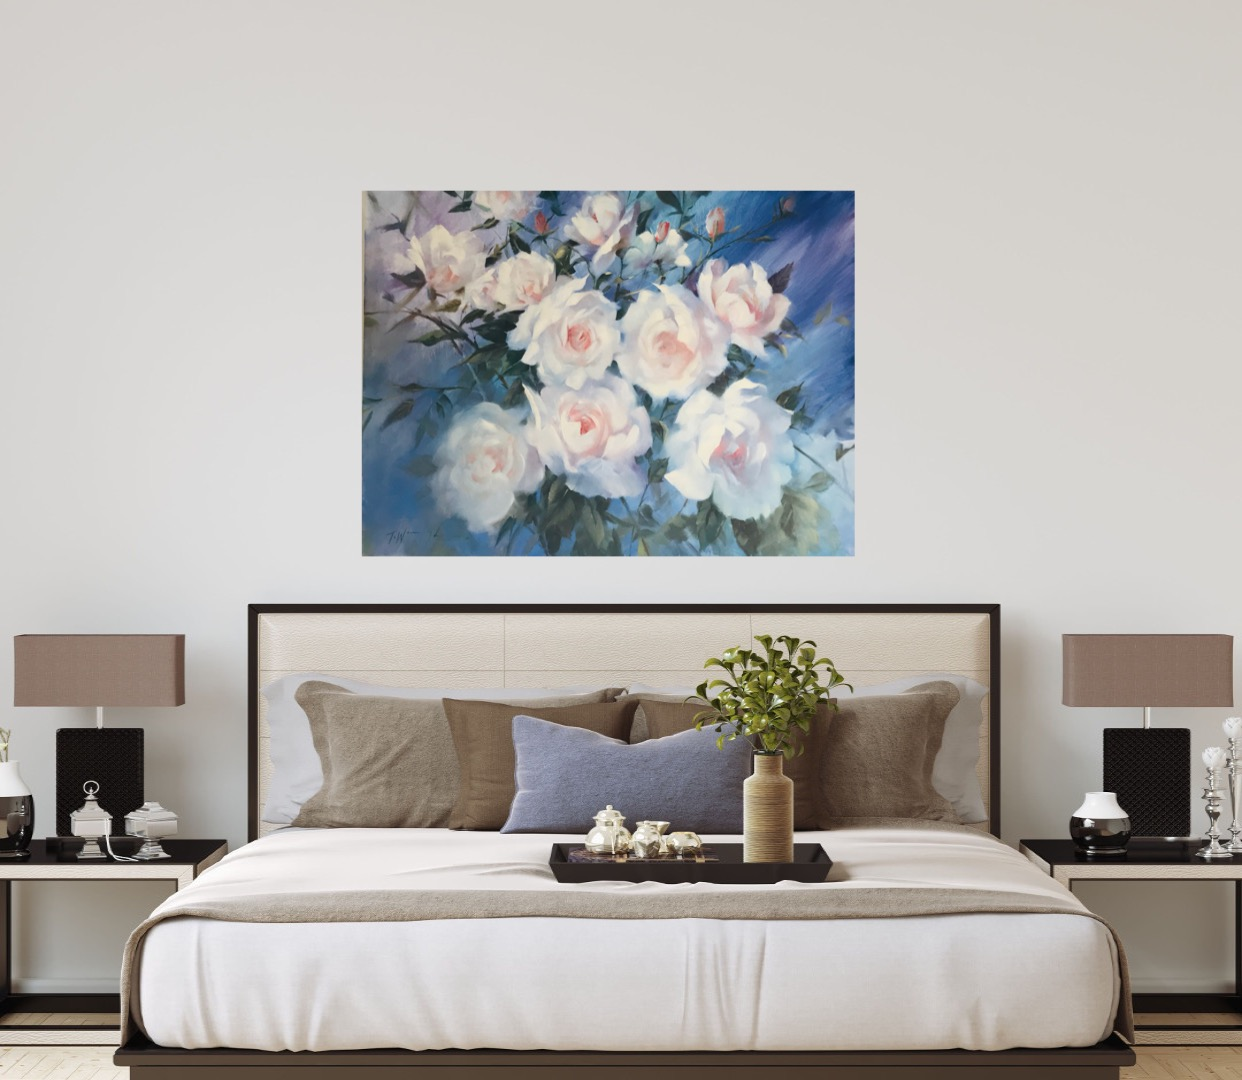 Swan Lake is an original oil painting. The delicate tones of the flowers are brought out by the impressionist blue back ground and the green foliage, all of which bring a layered aspect to the piece.